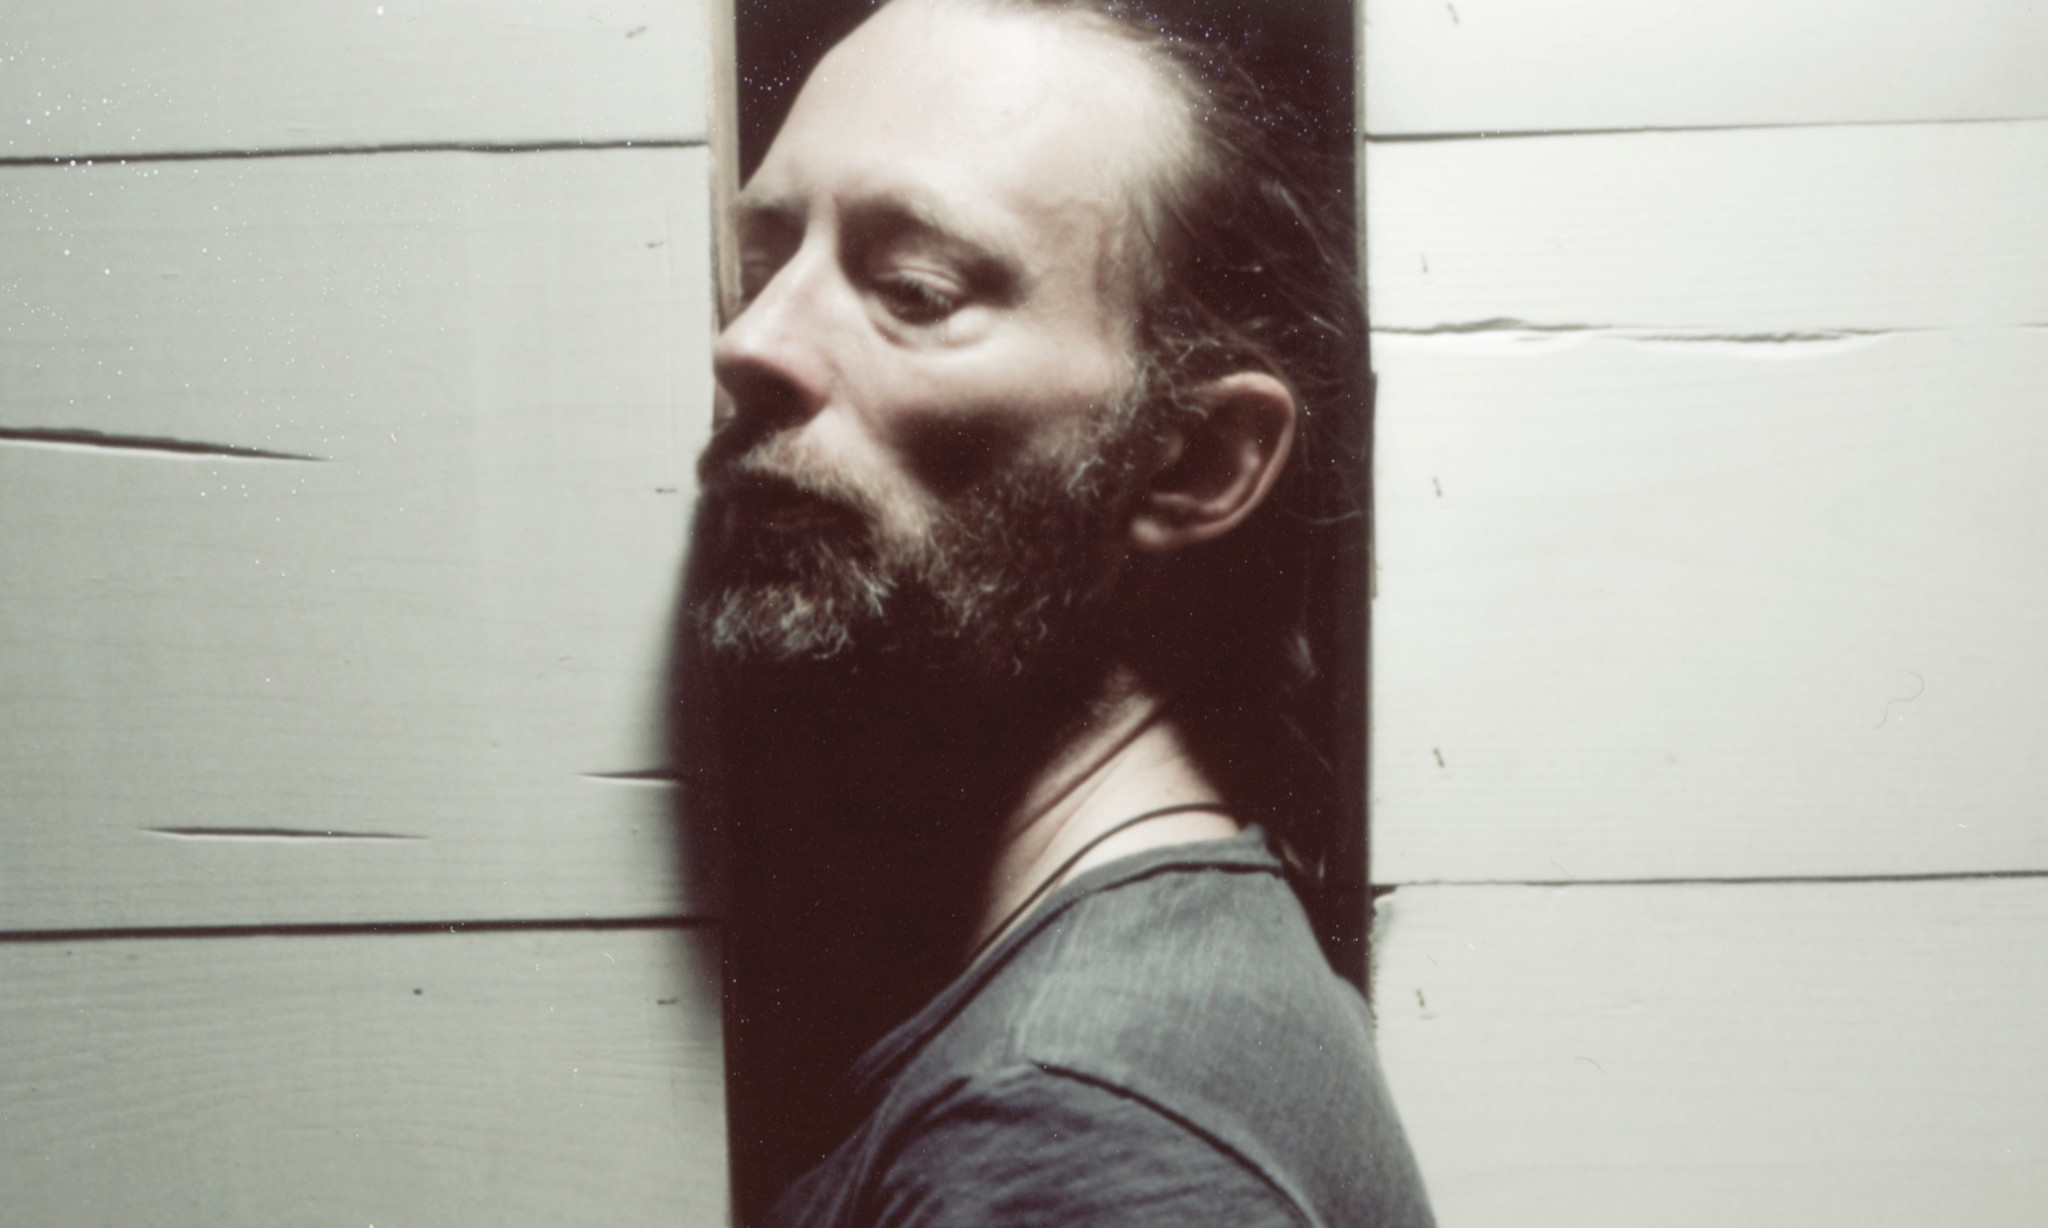 Thom Yorke launches new track Youwouldn'tlikemewhenI'mangry - listen